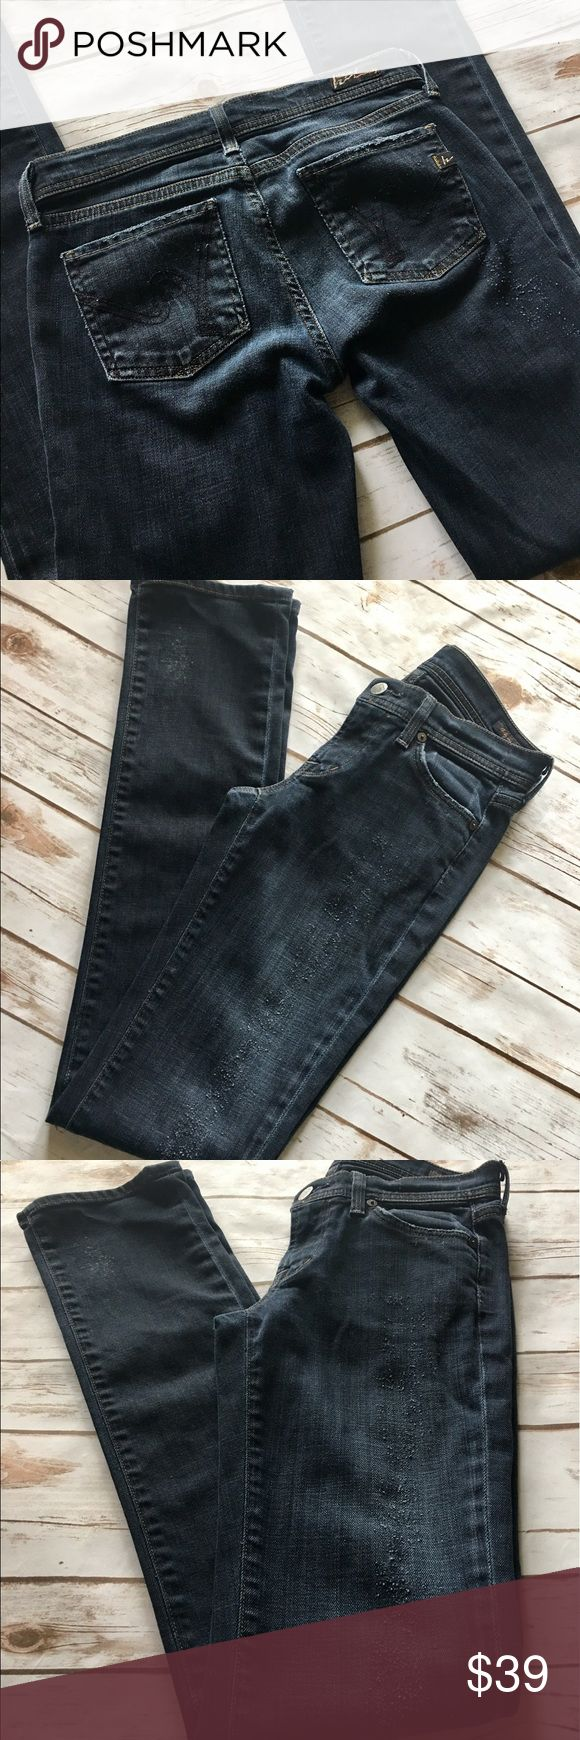 "✨Sale✨Citizens of Humanity-Lava Ava Stretch Jeans Citizens of Humanity-Lava Ava Stretch Jeans, low waist straight leg. Women's size 24. 32"" inseam. In fantastic preowned condition, jeans factory made with some intentional destruction. Please be sure to check out all of my other boutique items to bundle and save. Same day or next business day shipping is guaranteed. Reasonable offers will be considered! Citizens of Humanity Jeans Straight Leg"